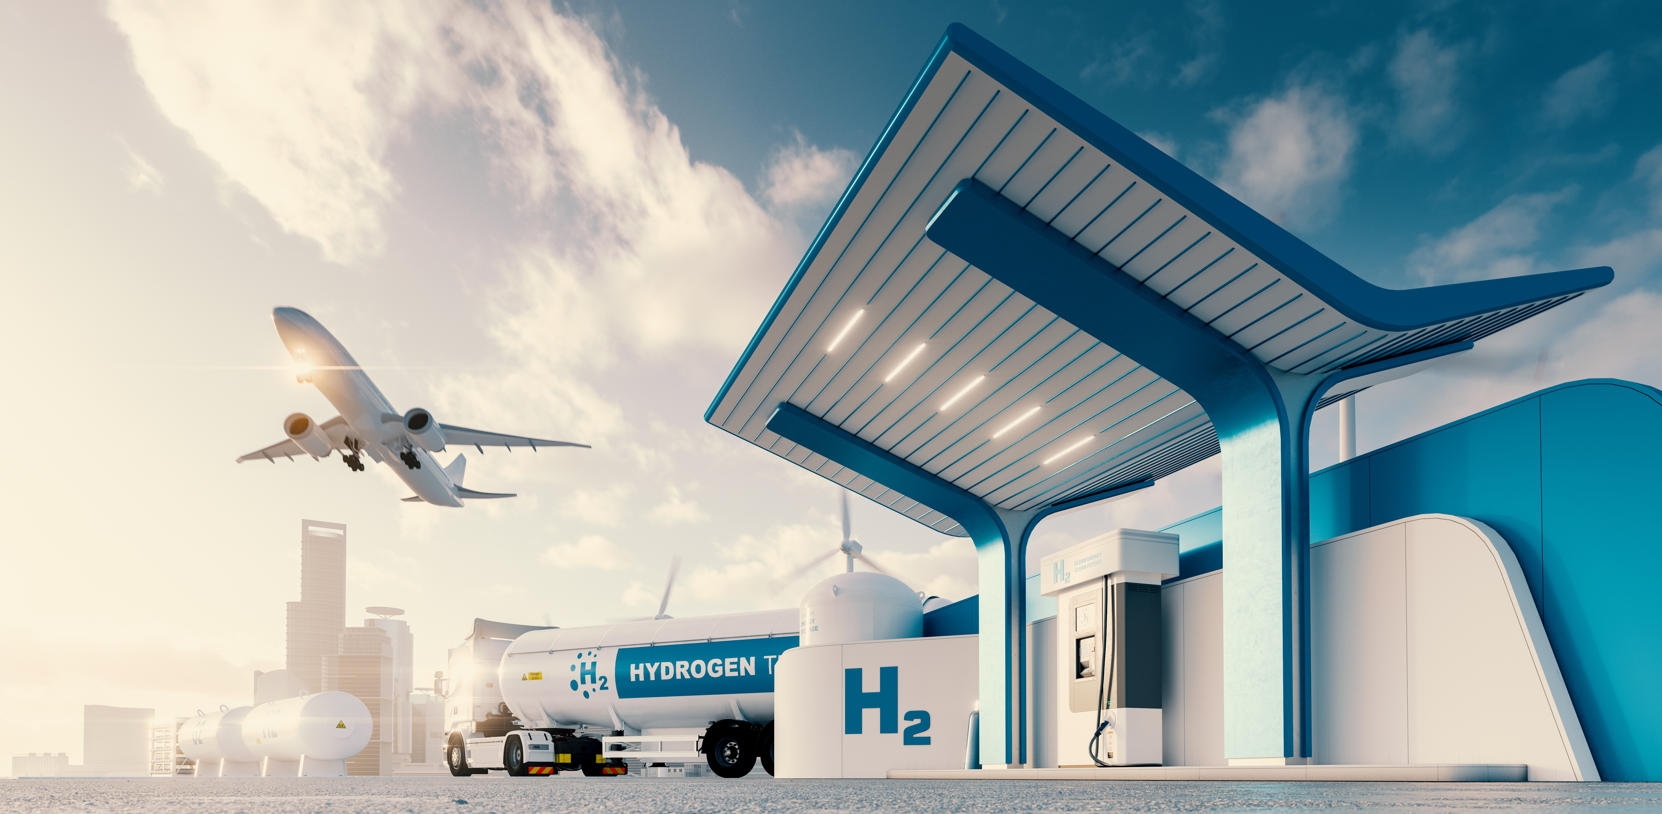 Blog: UK hydrogen strategy – a summary of key policy proposals